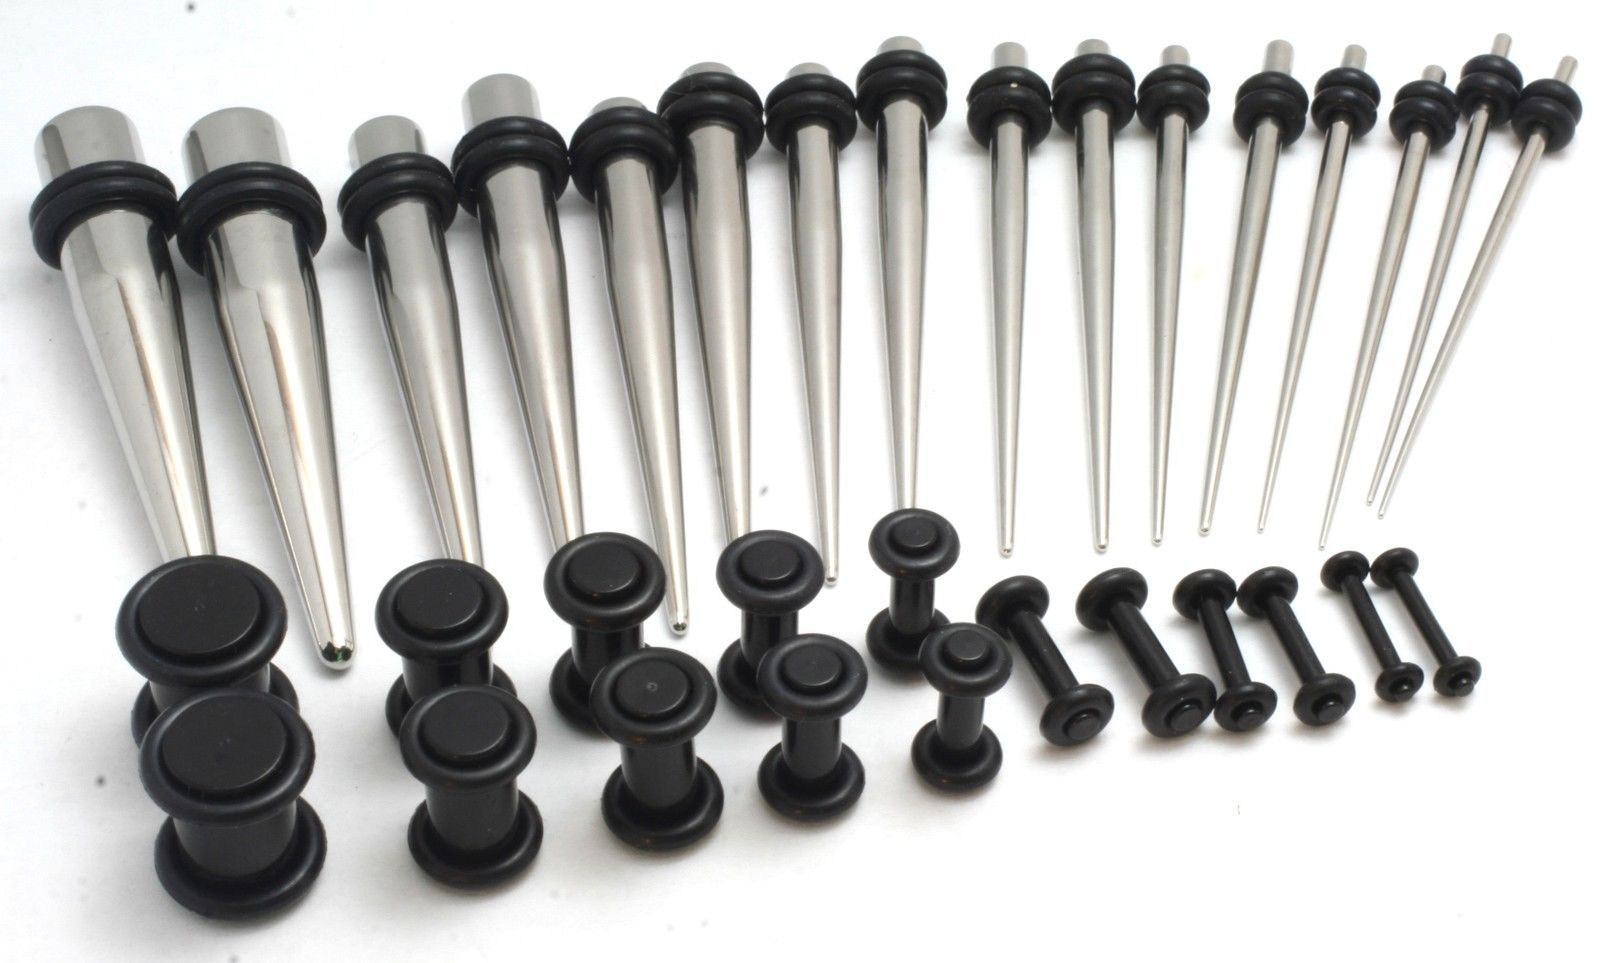 Primary image for 16 STEEL TAPERS +16 BLACK PLUGS gauge Ear Stretching Kit 0g 2g 4g 8g 10g 12g 14g